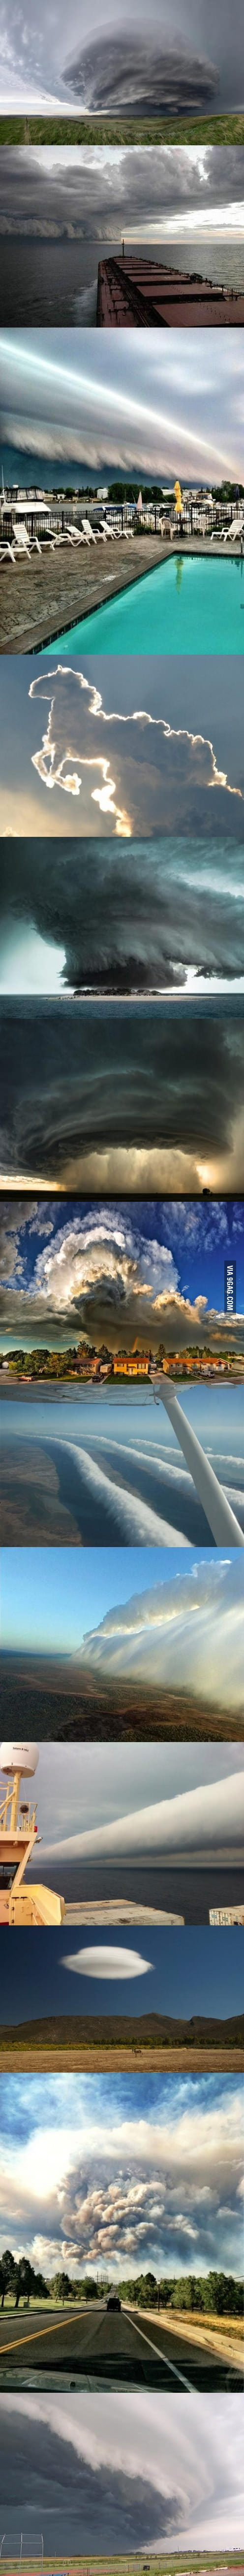 Awesome clouds!